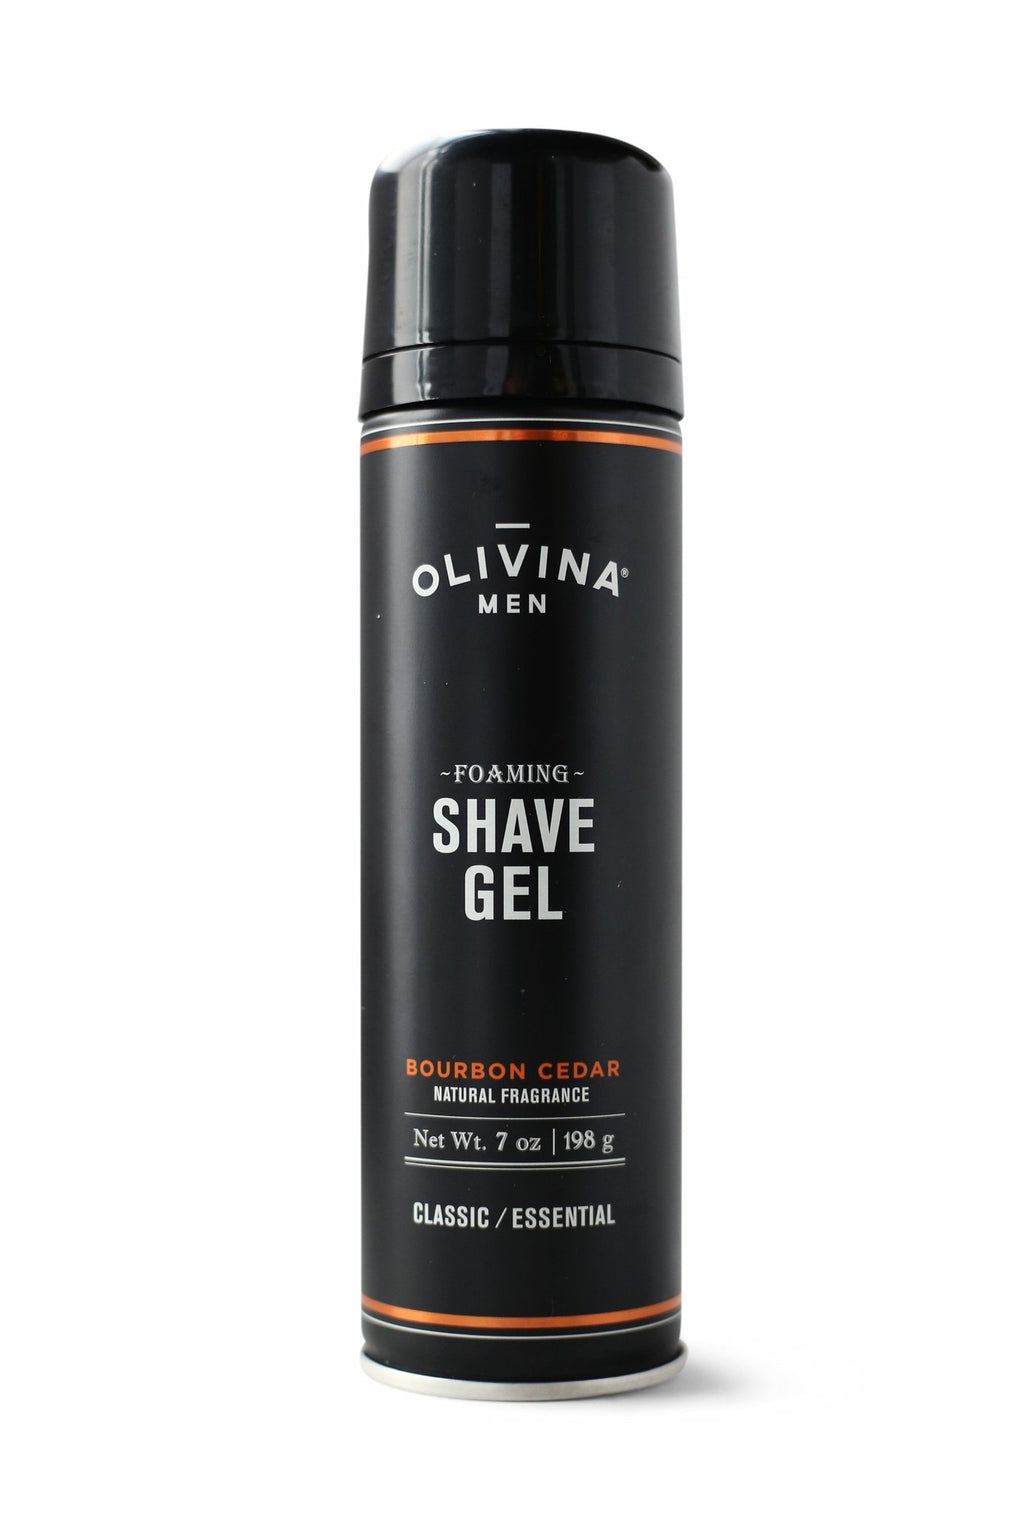 Foaming Shave Gel - Bourbon Cedar (7 oz.)